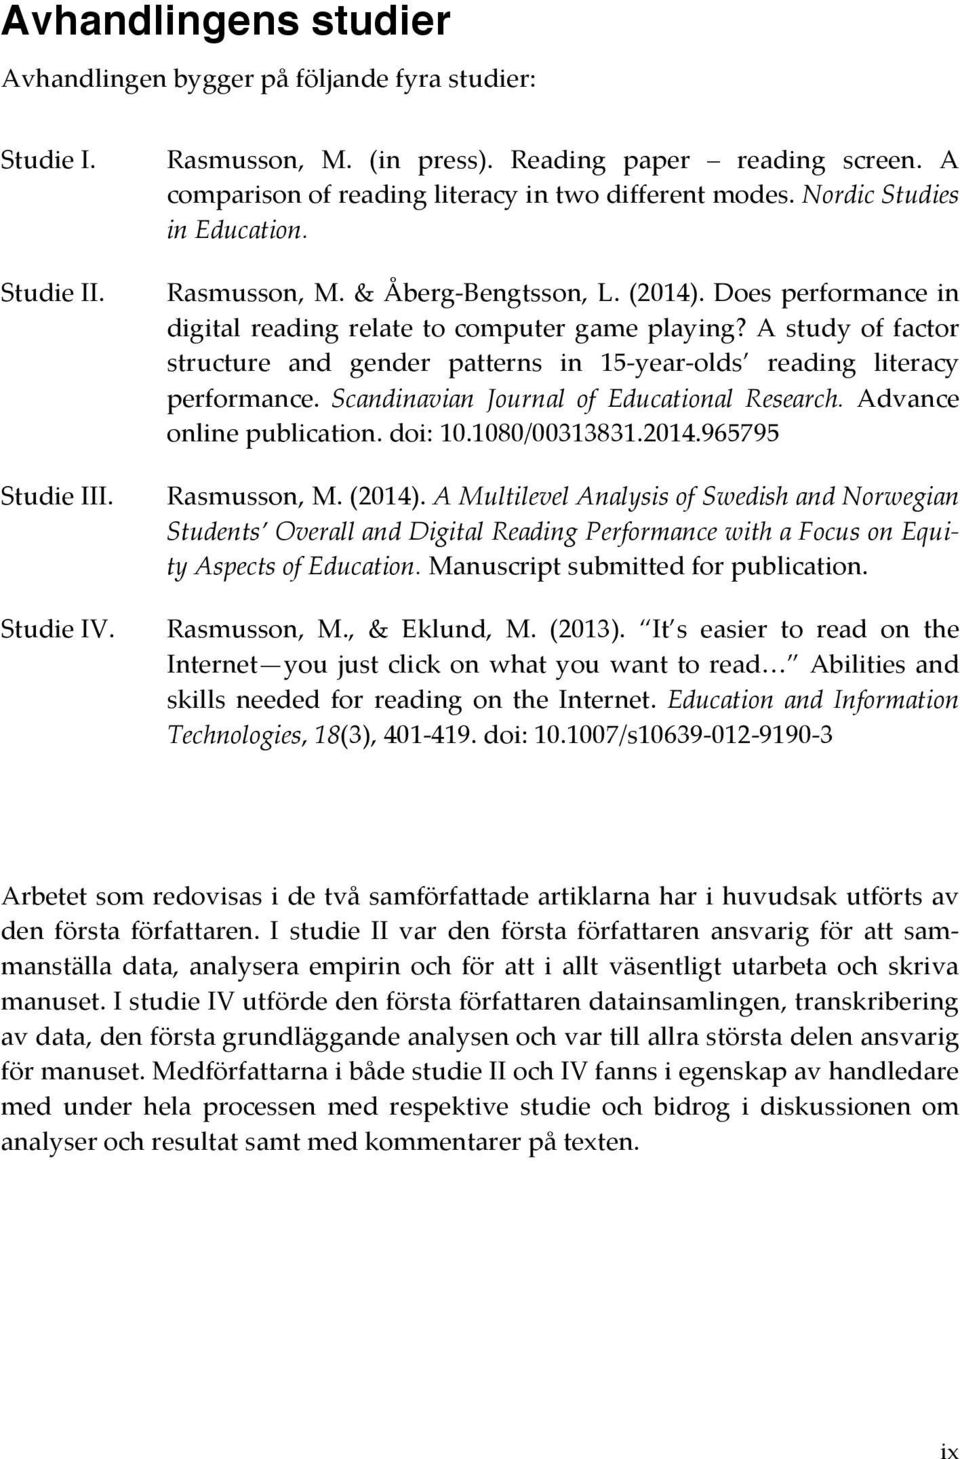 astudyoffactor structure and gender patterns in 15TyearTolds reading literacy performance. Scandinavian Journal of Educational Research. Advance onlinepublication.doi:10.1080/00313831.2014.